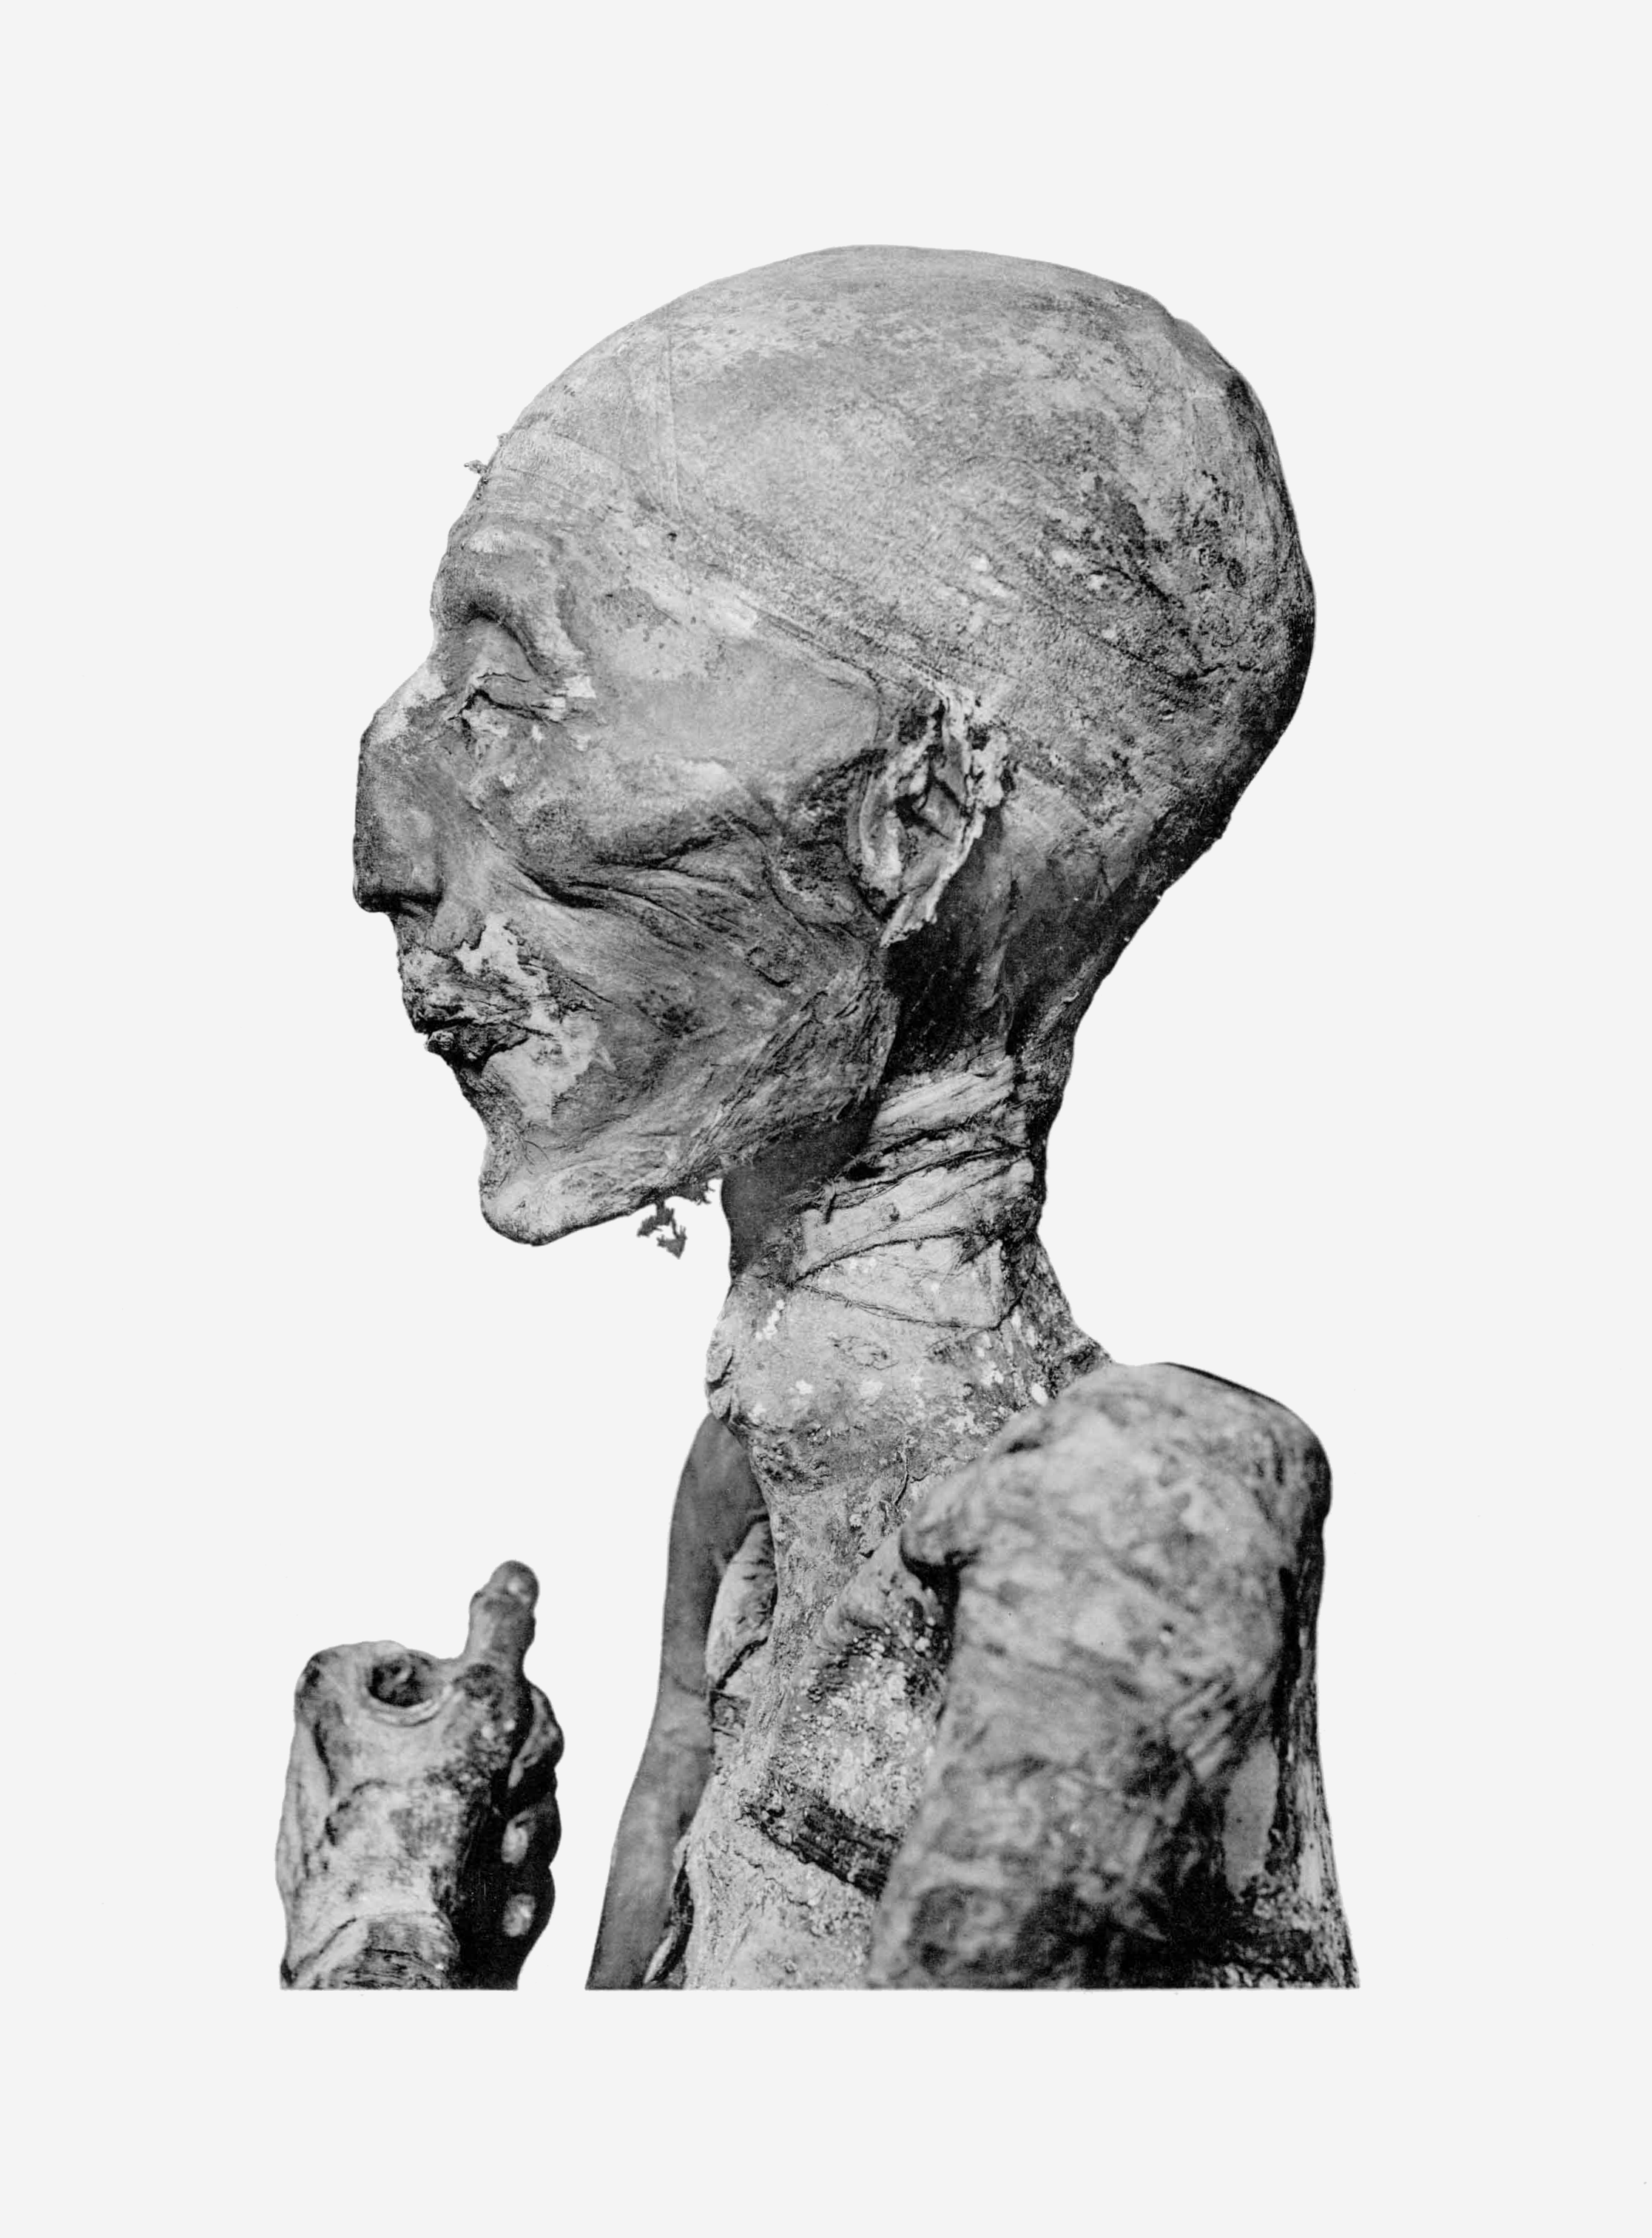 Doctors discovered cancer in the Egyptian mummy 2000 years after death